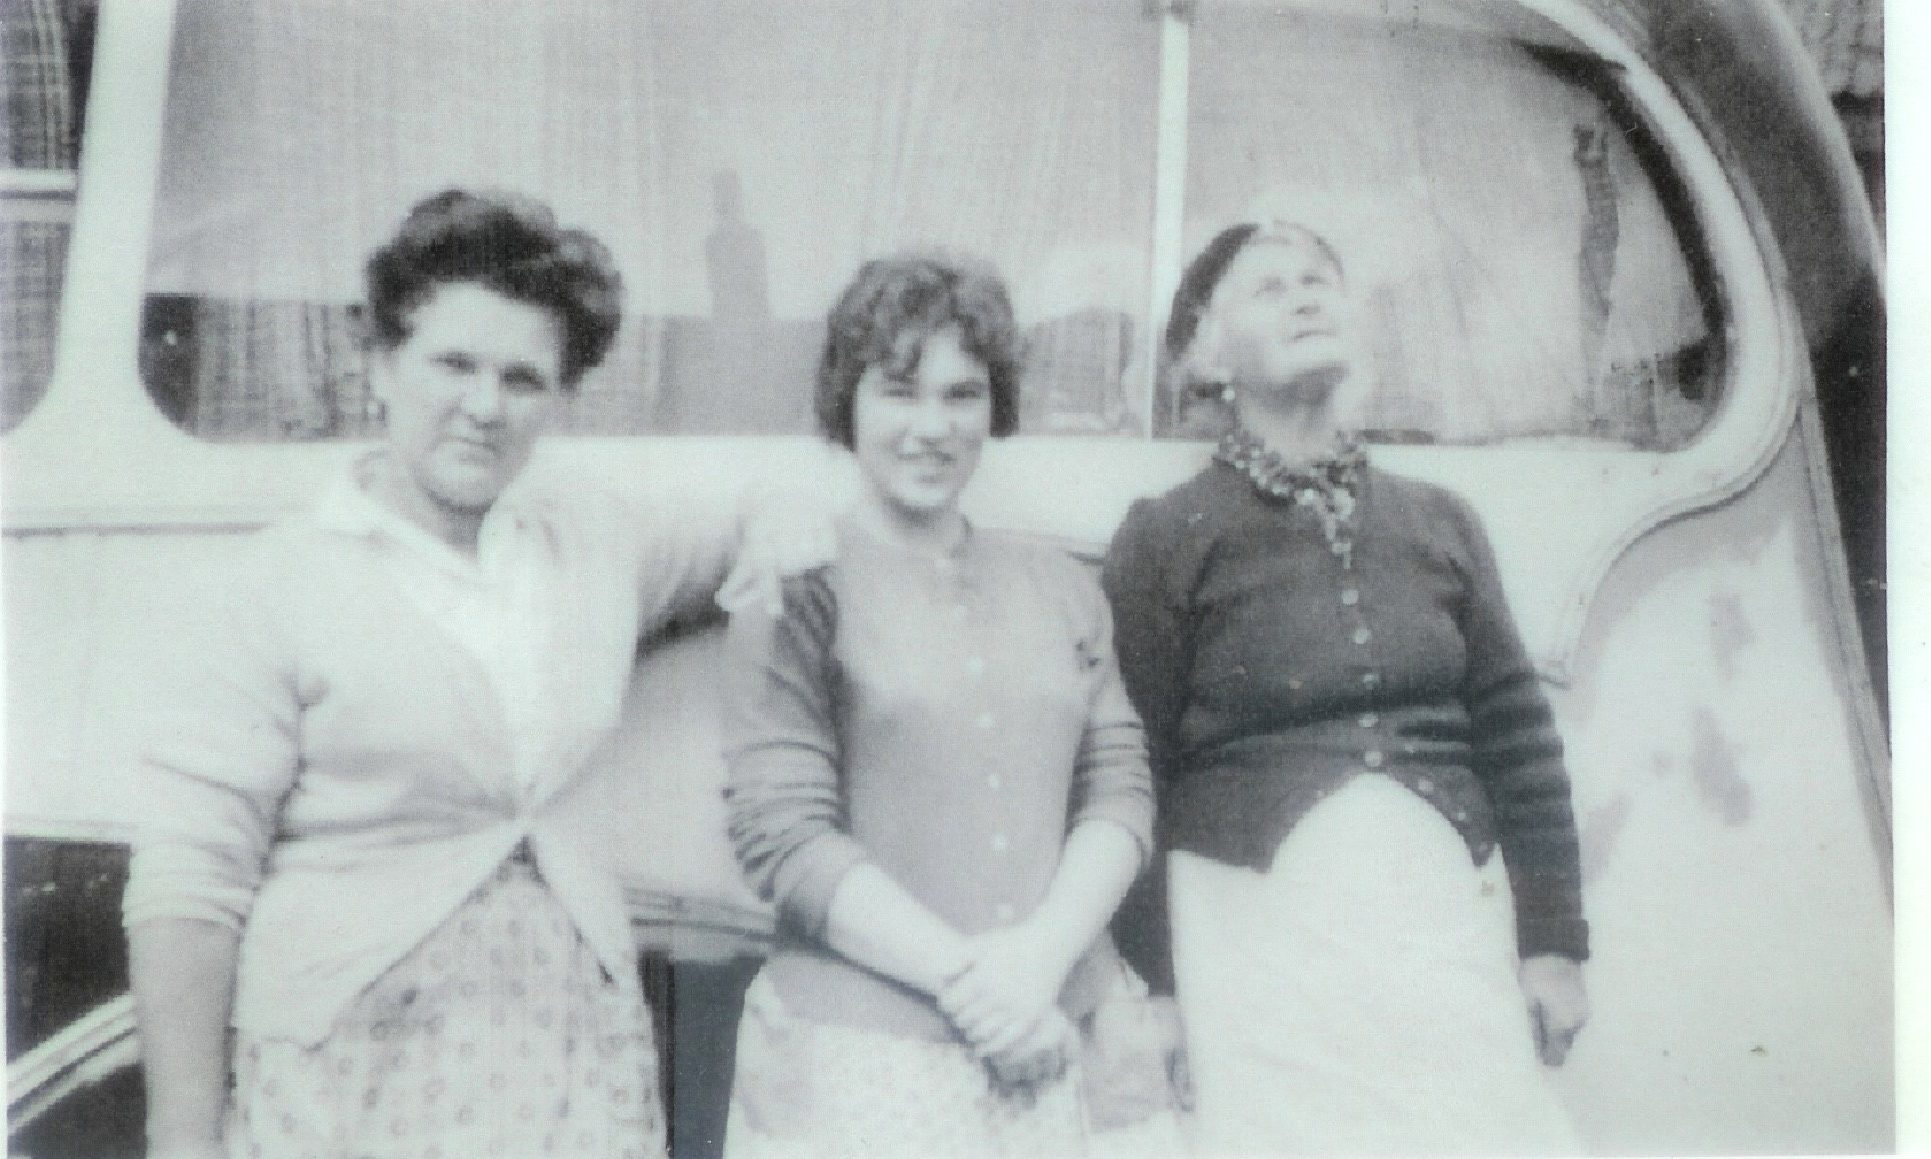 Jess in the middle, with her mum, left, and her mums friend.